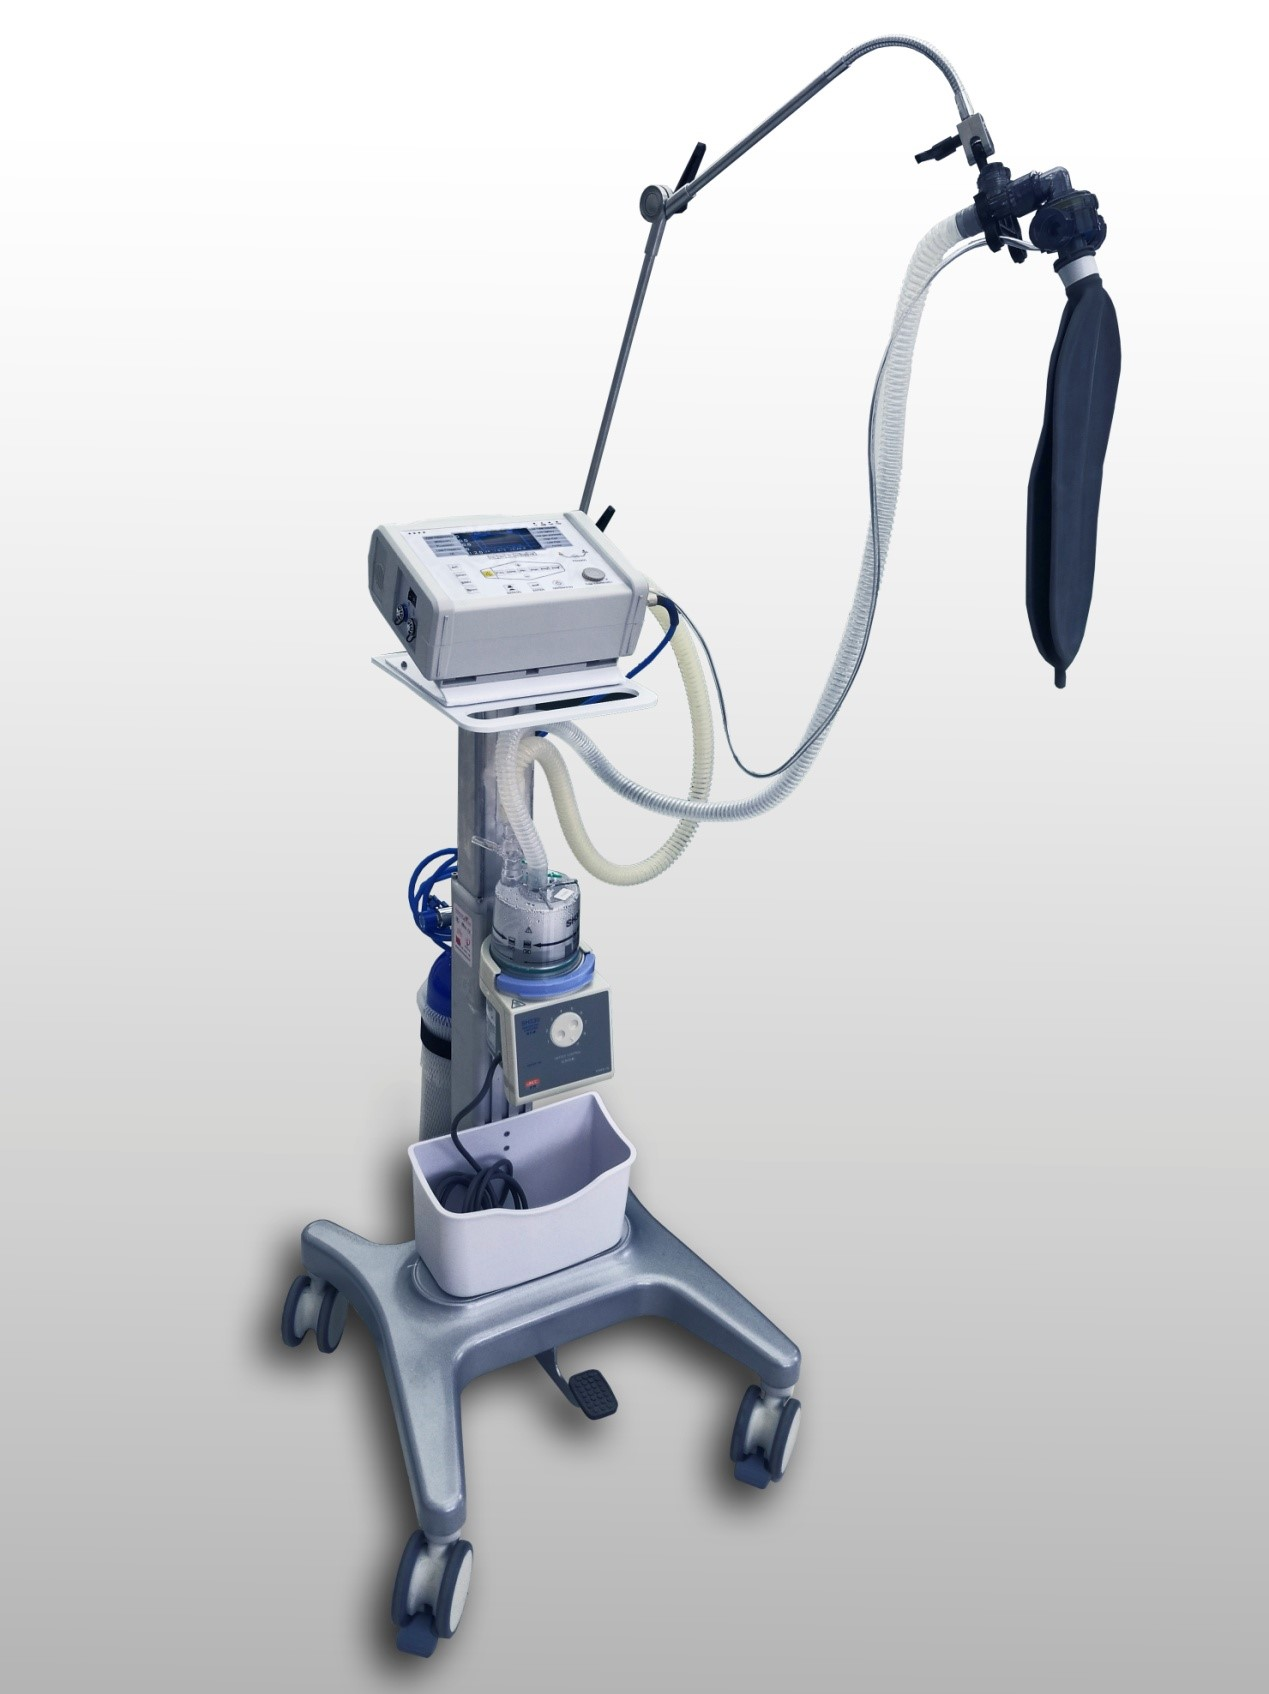 ICU professional Invasive ventilator